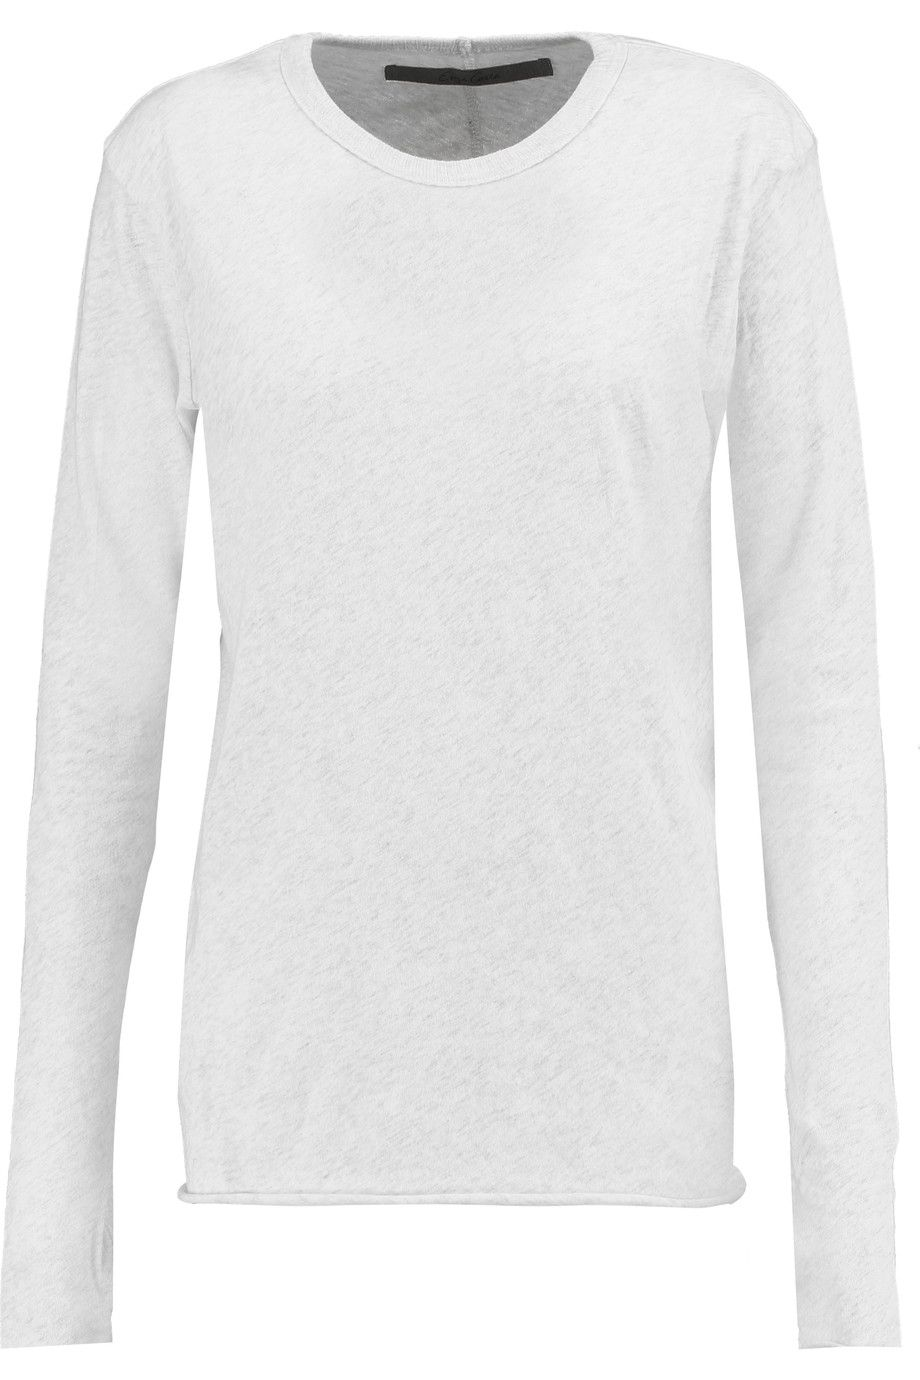 Enza Costa Woman Ribbed Cotton And Cashmere-blend Sweater Light Gray Size M Enza Costa Buy Cheap In China Sale Countdown Package IKIOe